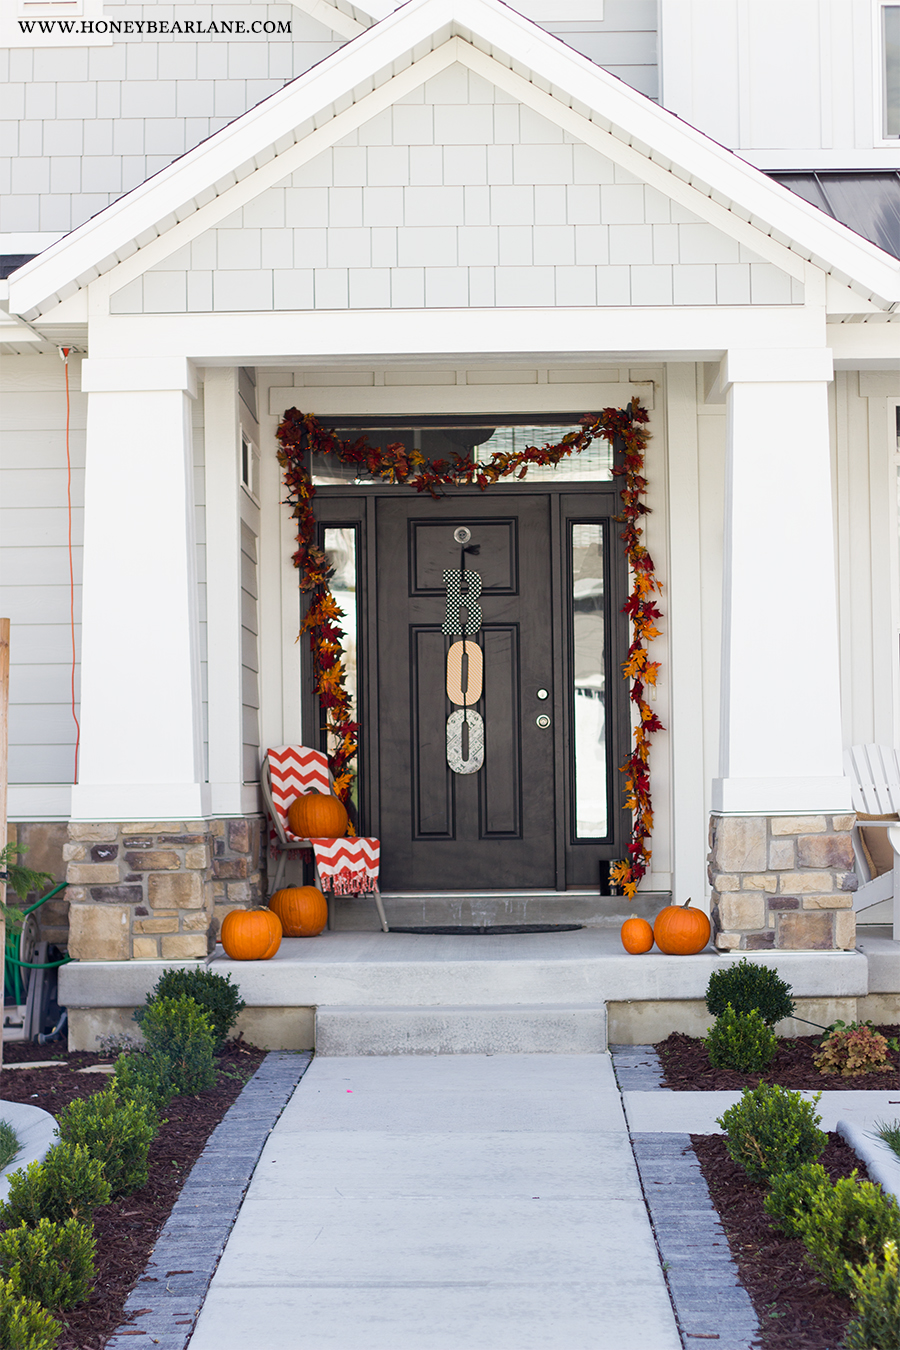 Hobby Lobby Halloween Decorations 2019.Farmhouse Halloween Front Porch Decor Honeybear Lane